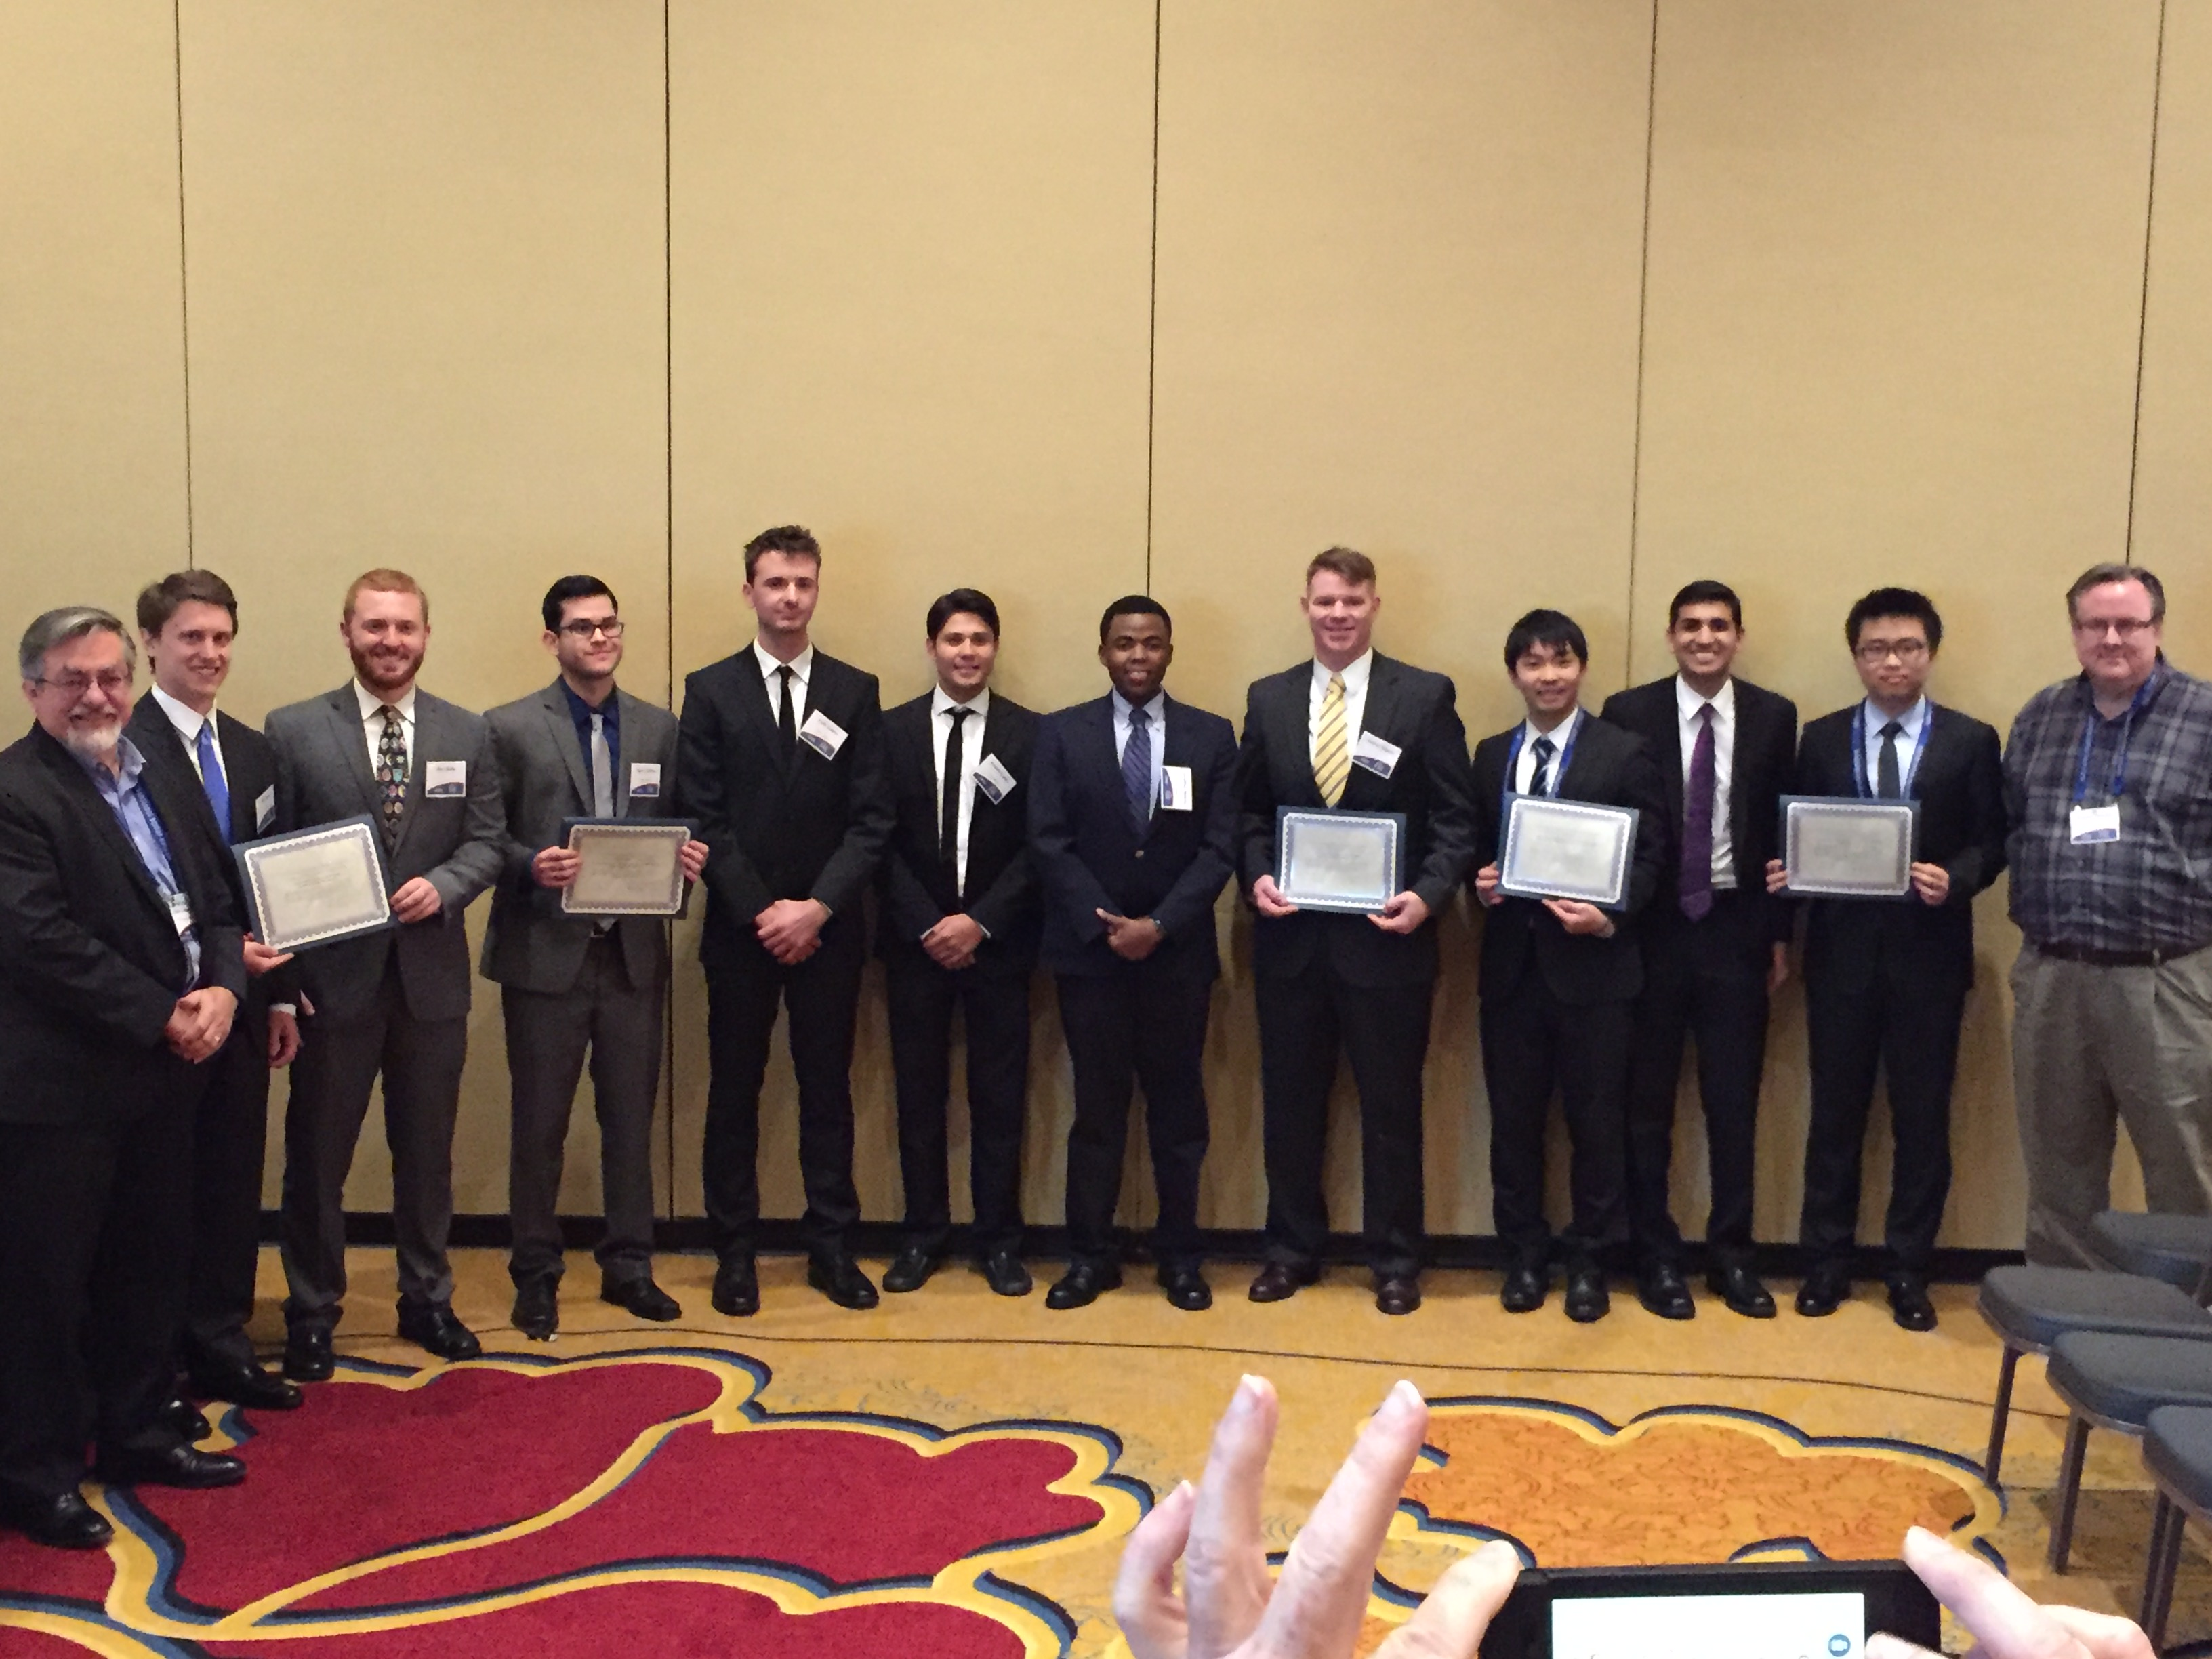 ISDC 2017 Semi-finals in St. Louis with representatives from each of the student teams.